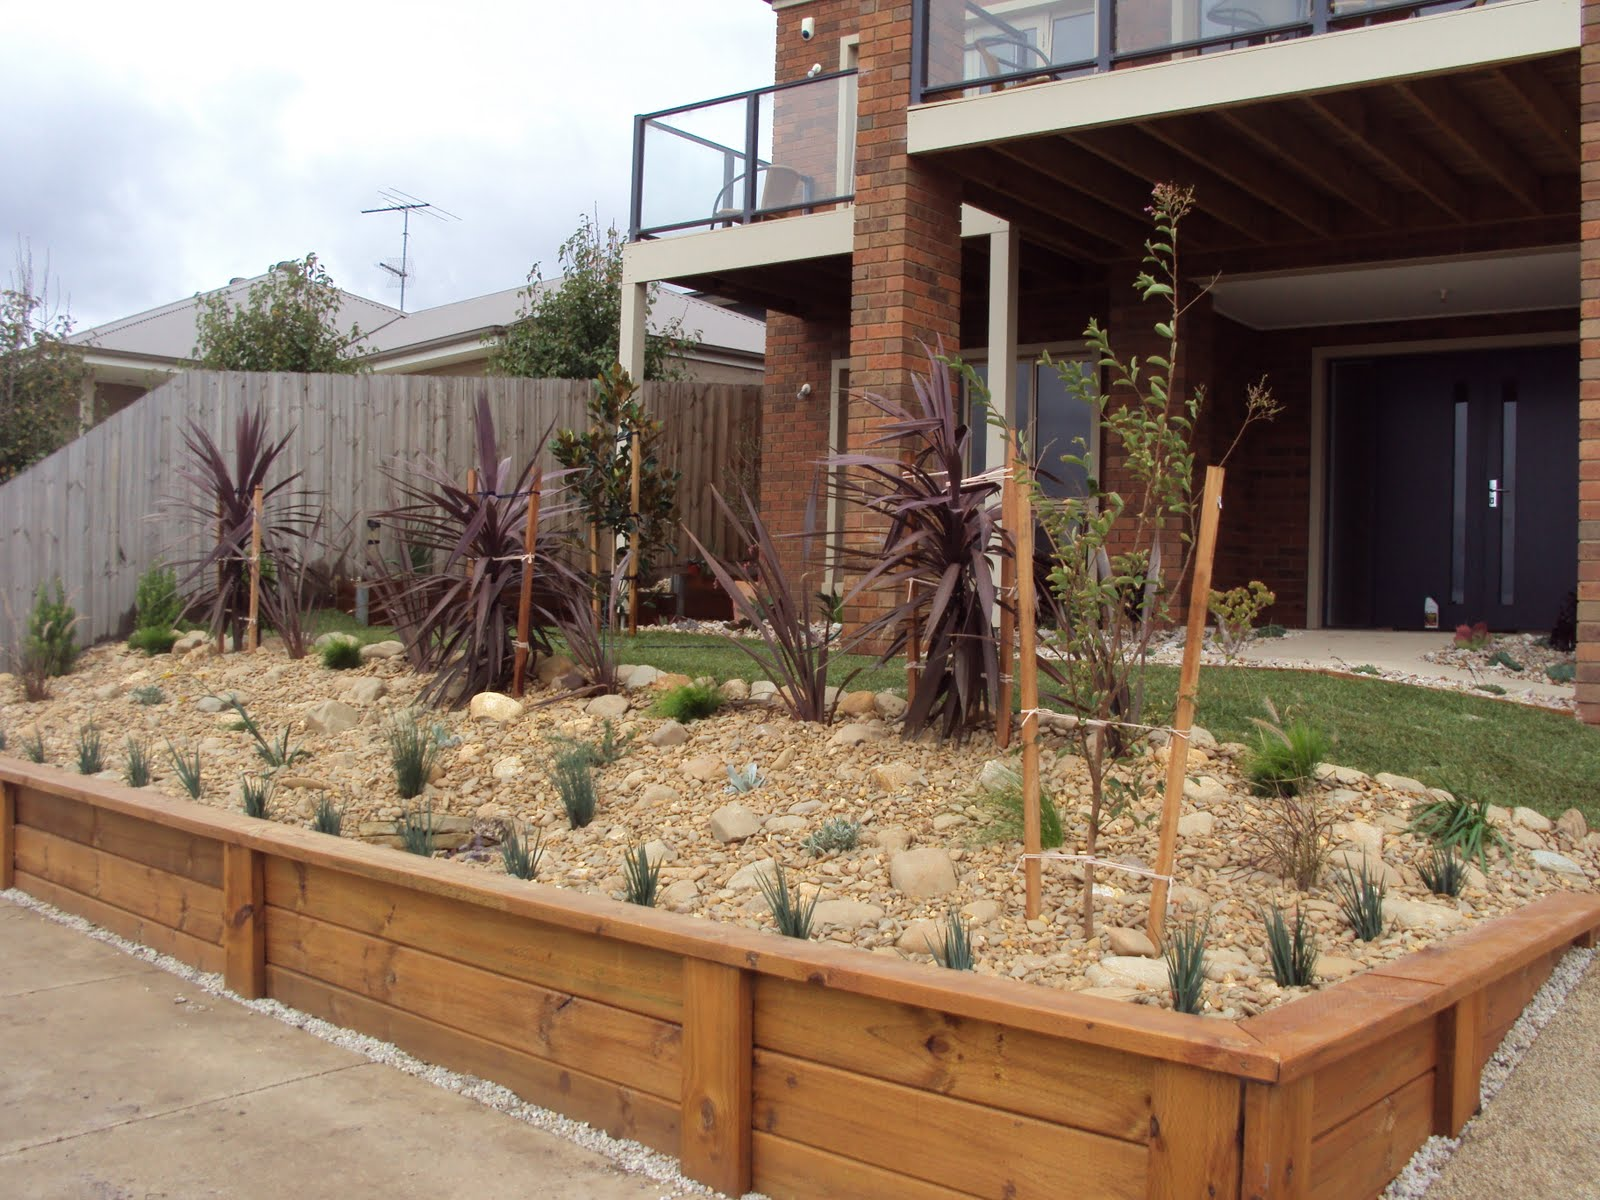 Scorpio landscaping geelong small front yard extremely for Garden design geelong